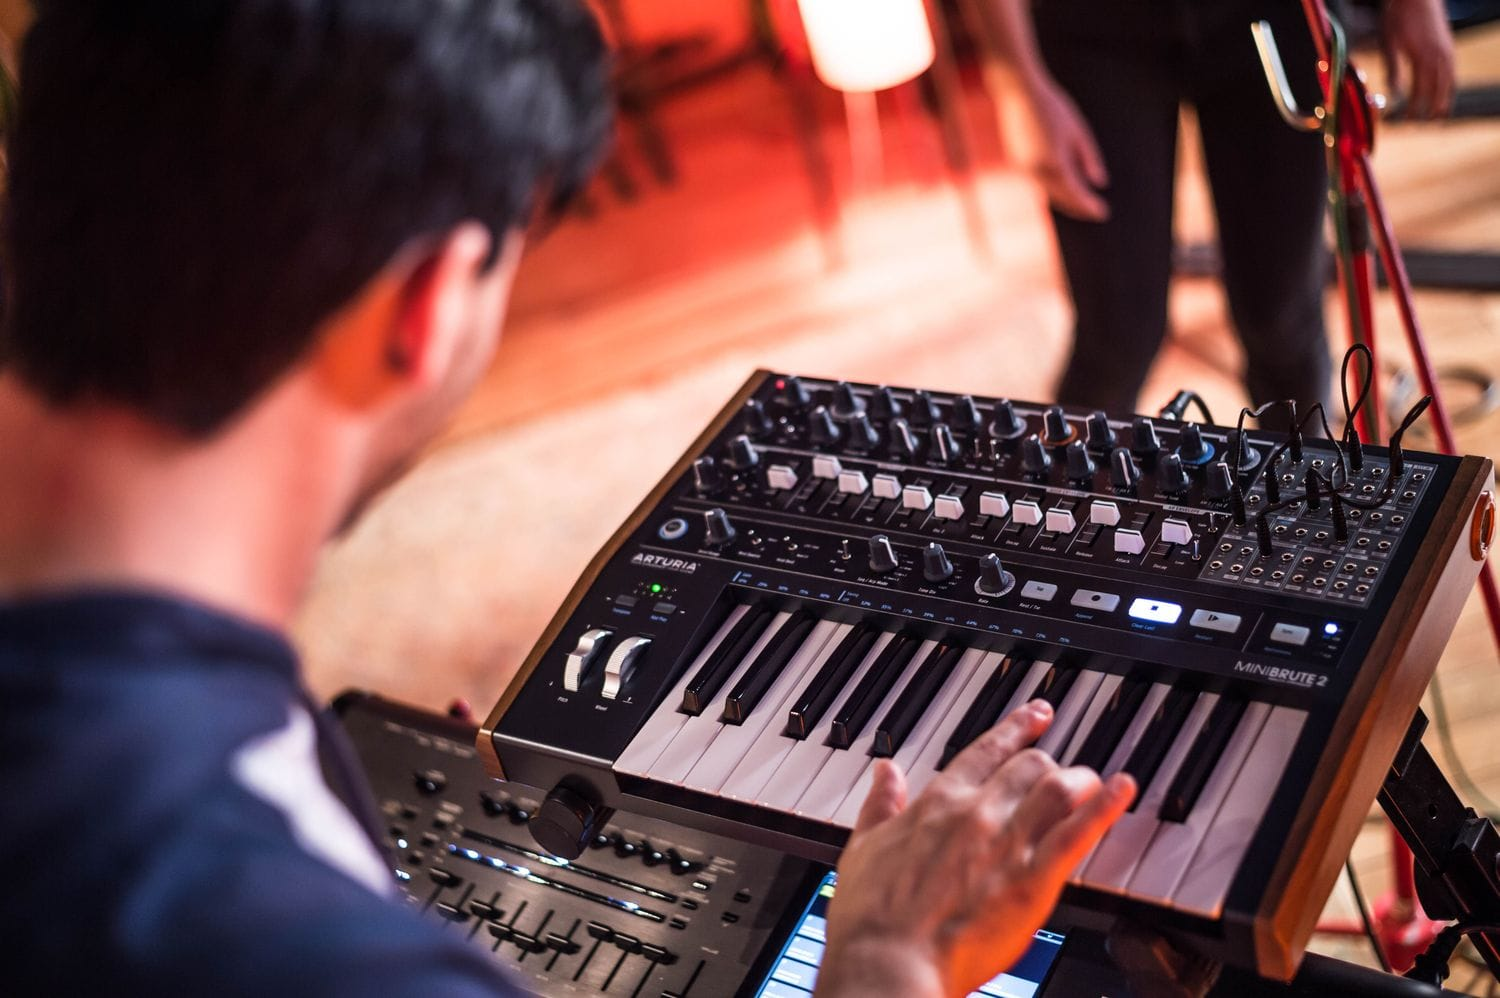 arturia minibrute 2 analogue hybrid sequencer-synth keyboard